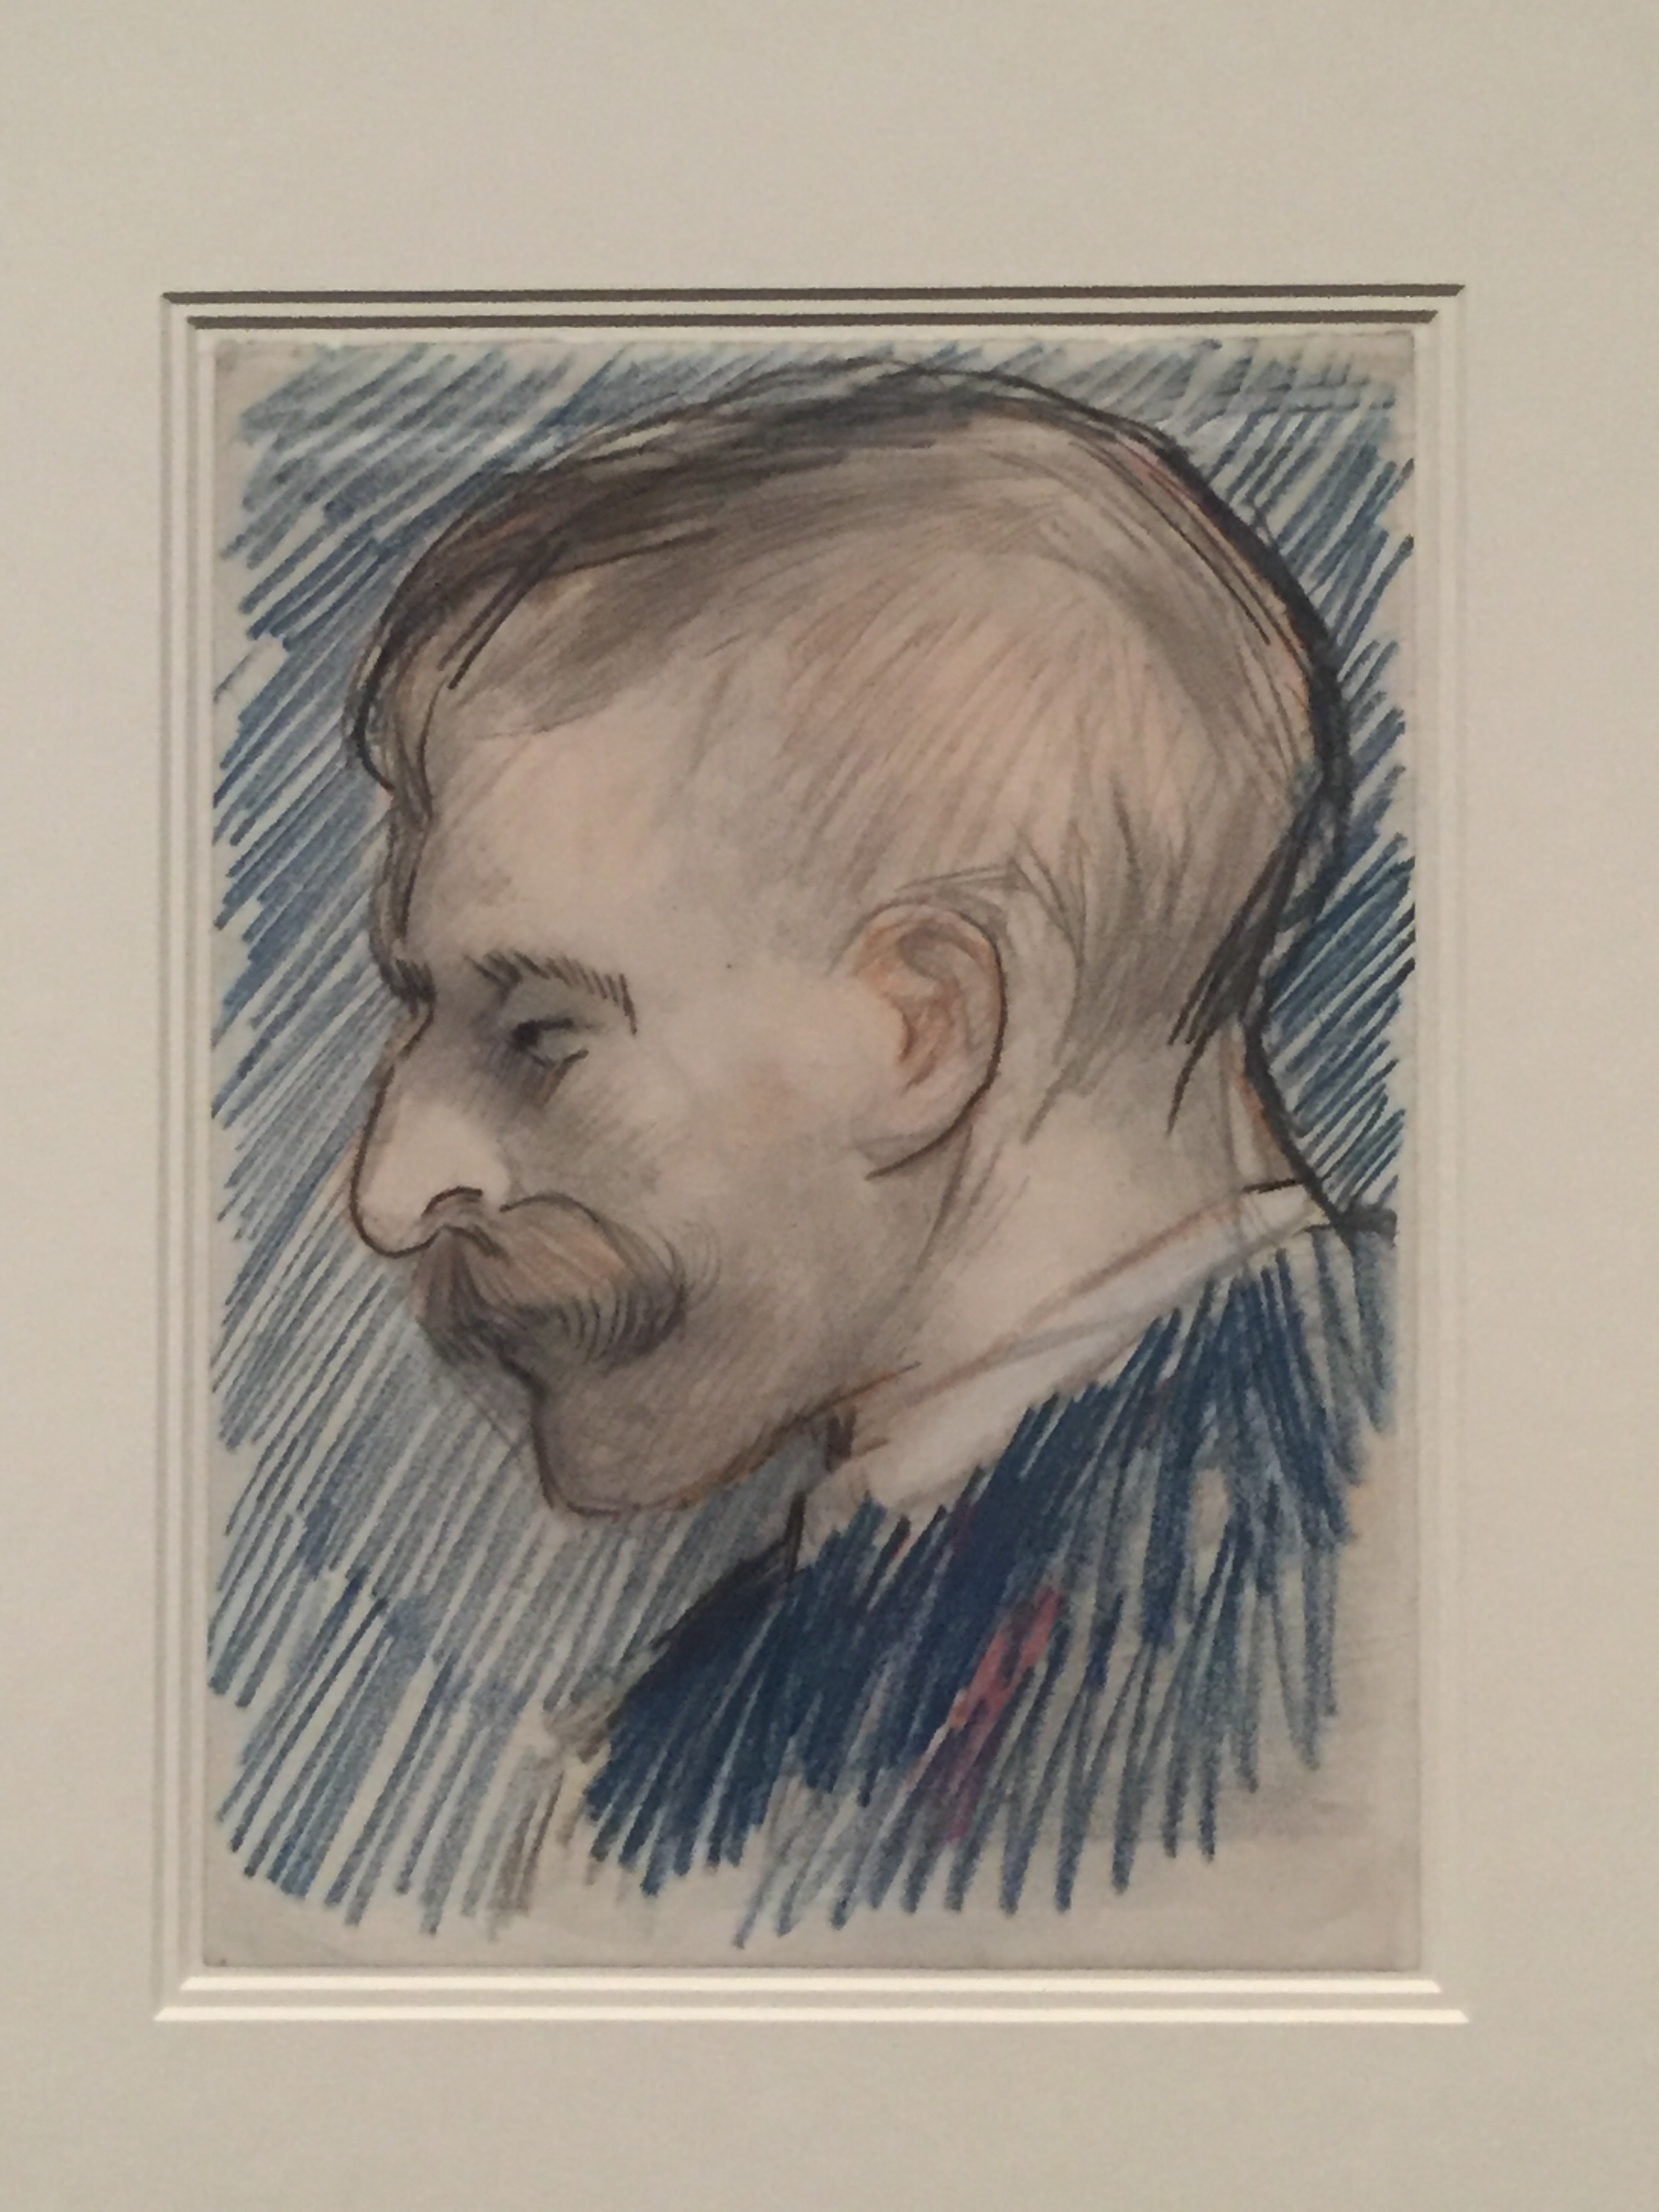 A portrait that is thought to be of Theo, Vincent's beloved younger brother.